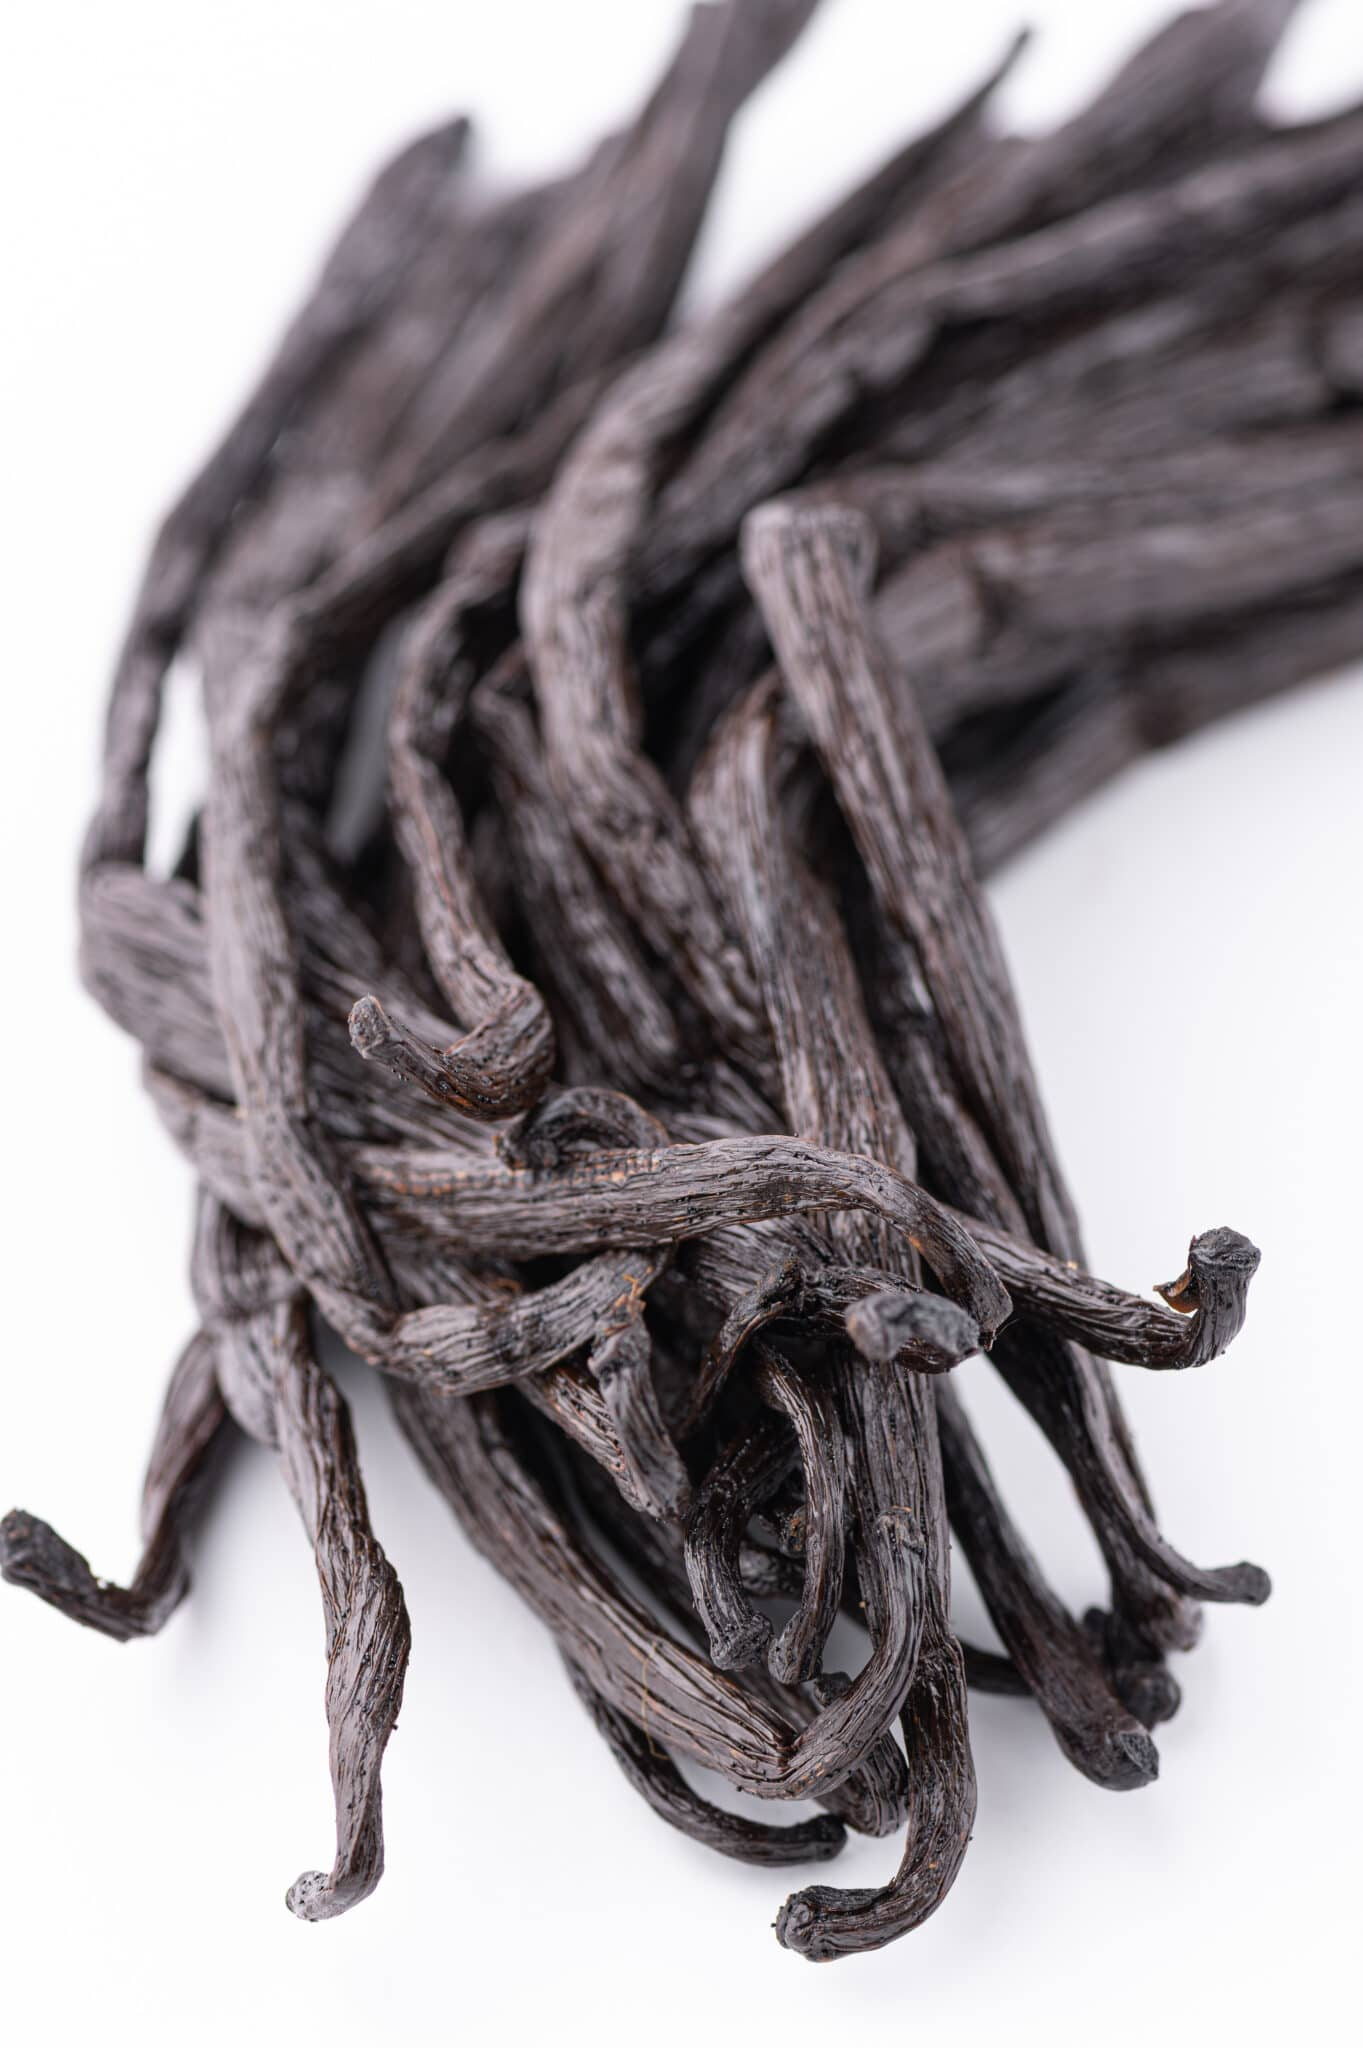 A bundle of fresh plump vanilla beans on a bright white table top.